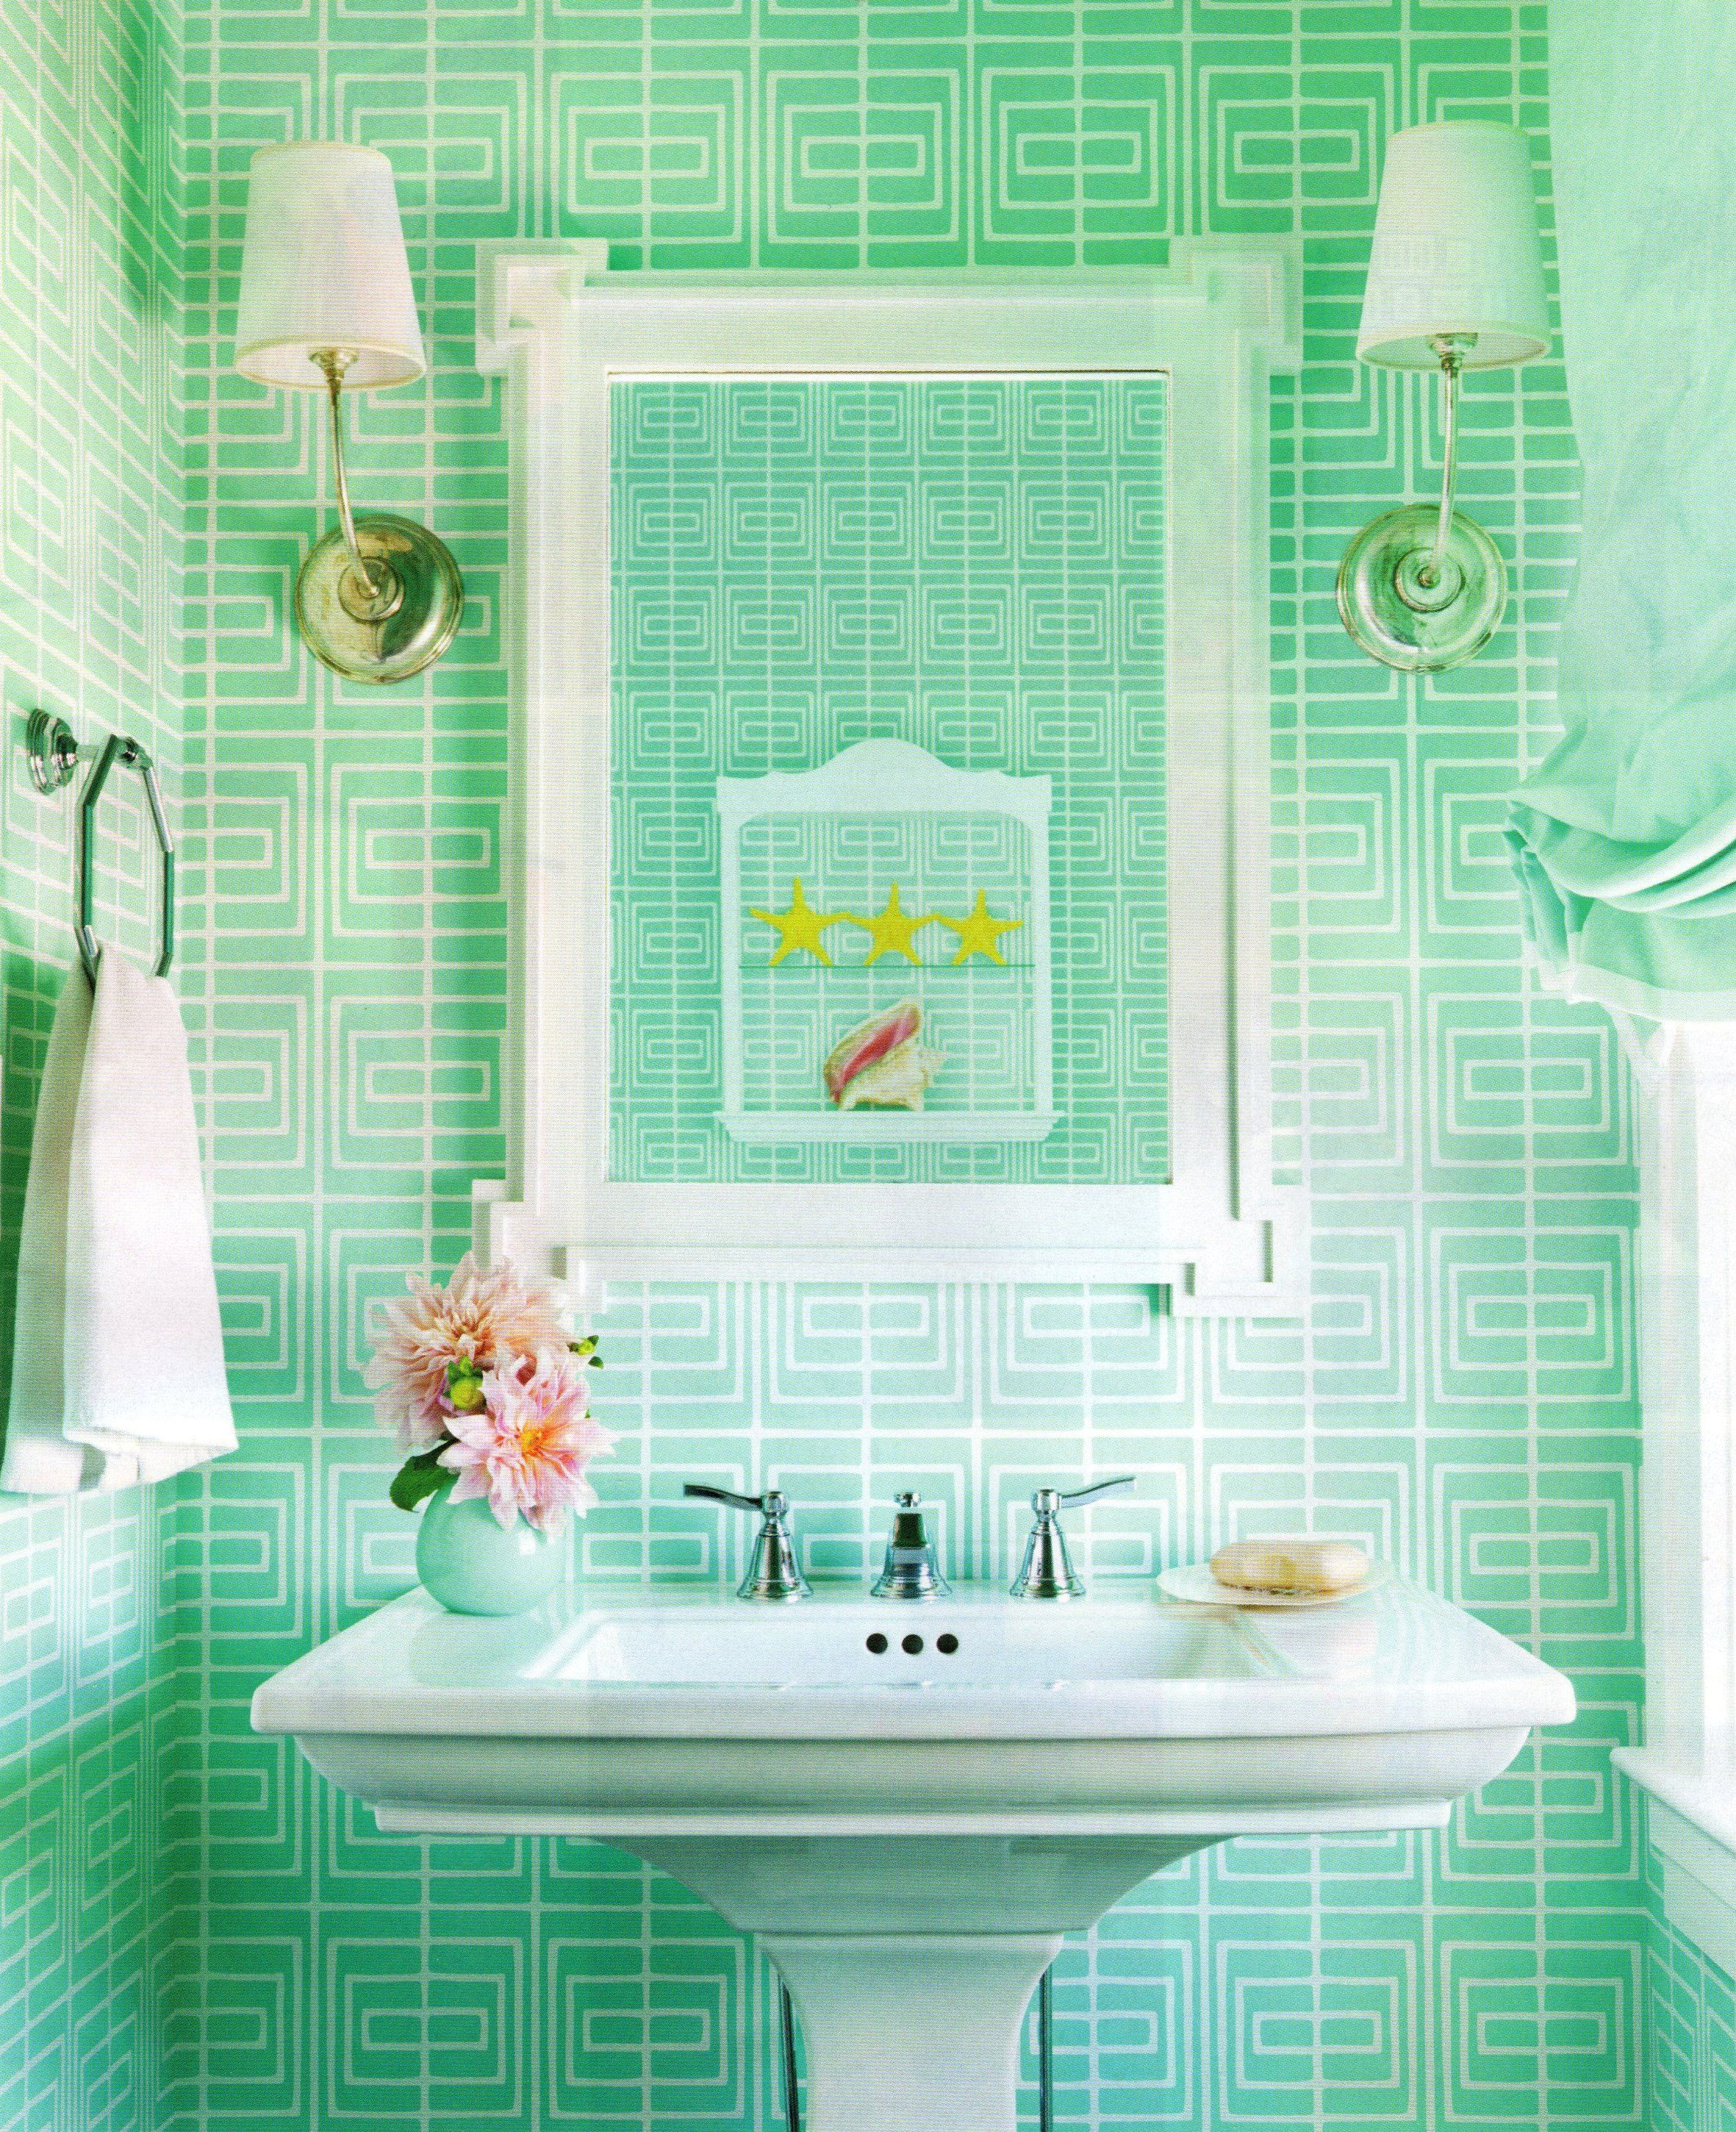 Colorful bathroom decoration - Bright Green Bathroom Tiles Bring A Pretty Pop Of Fun Colors Bathrooms